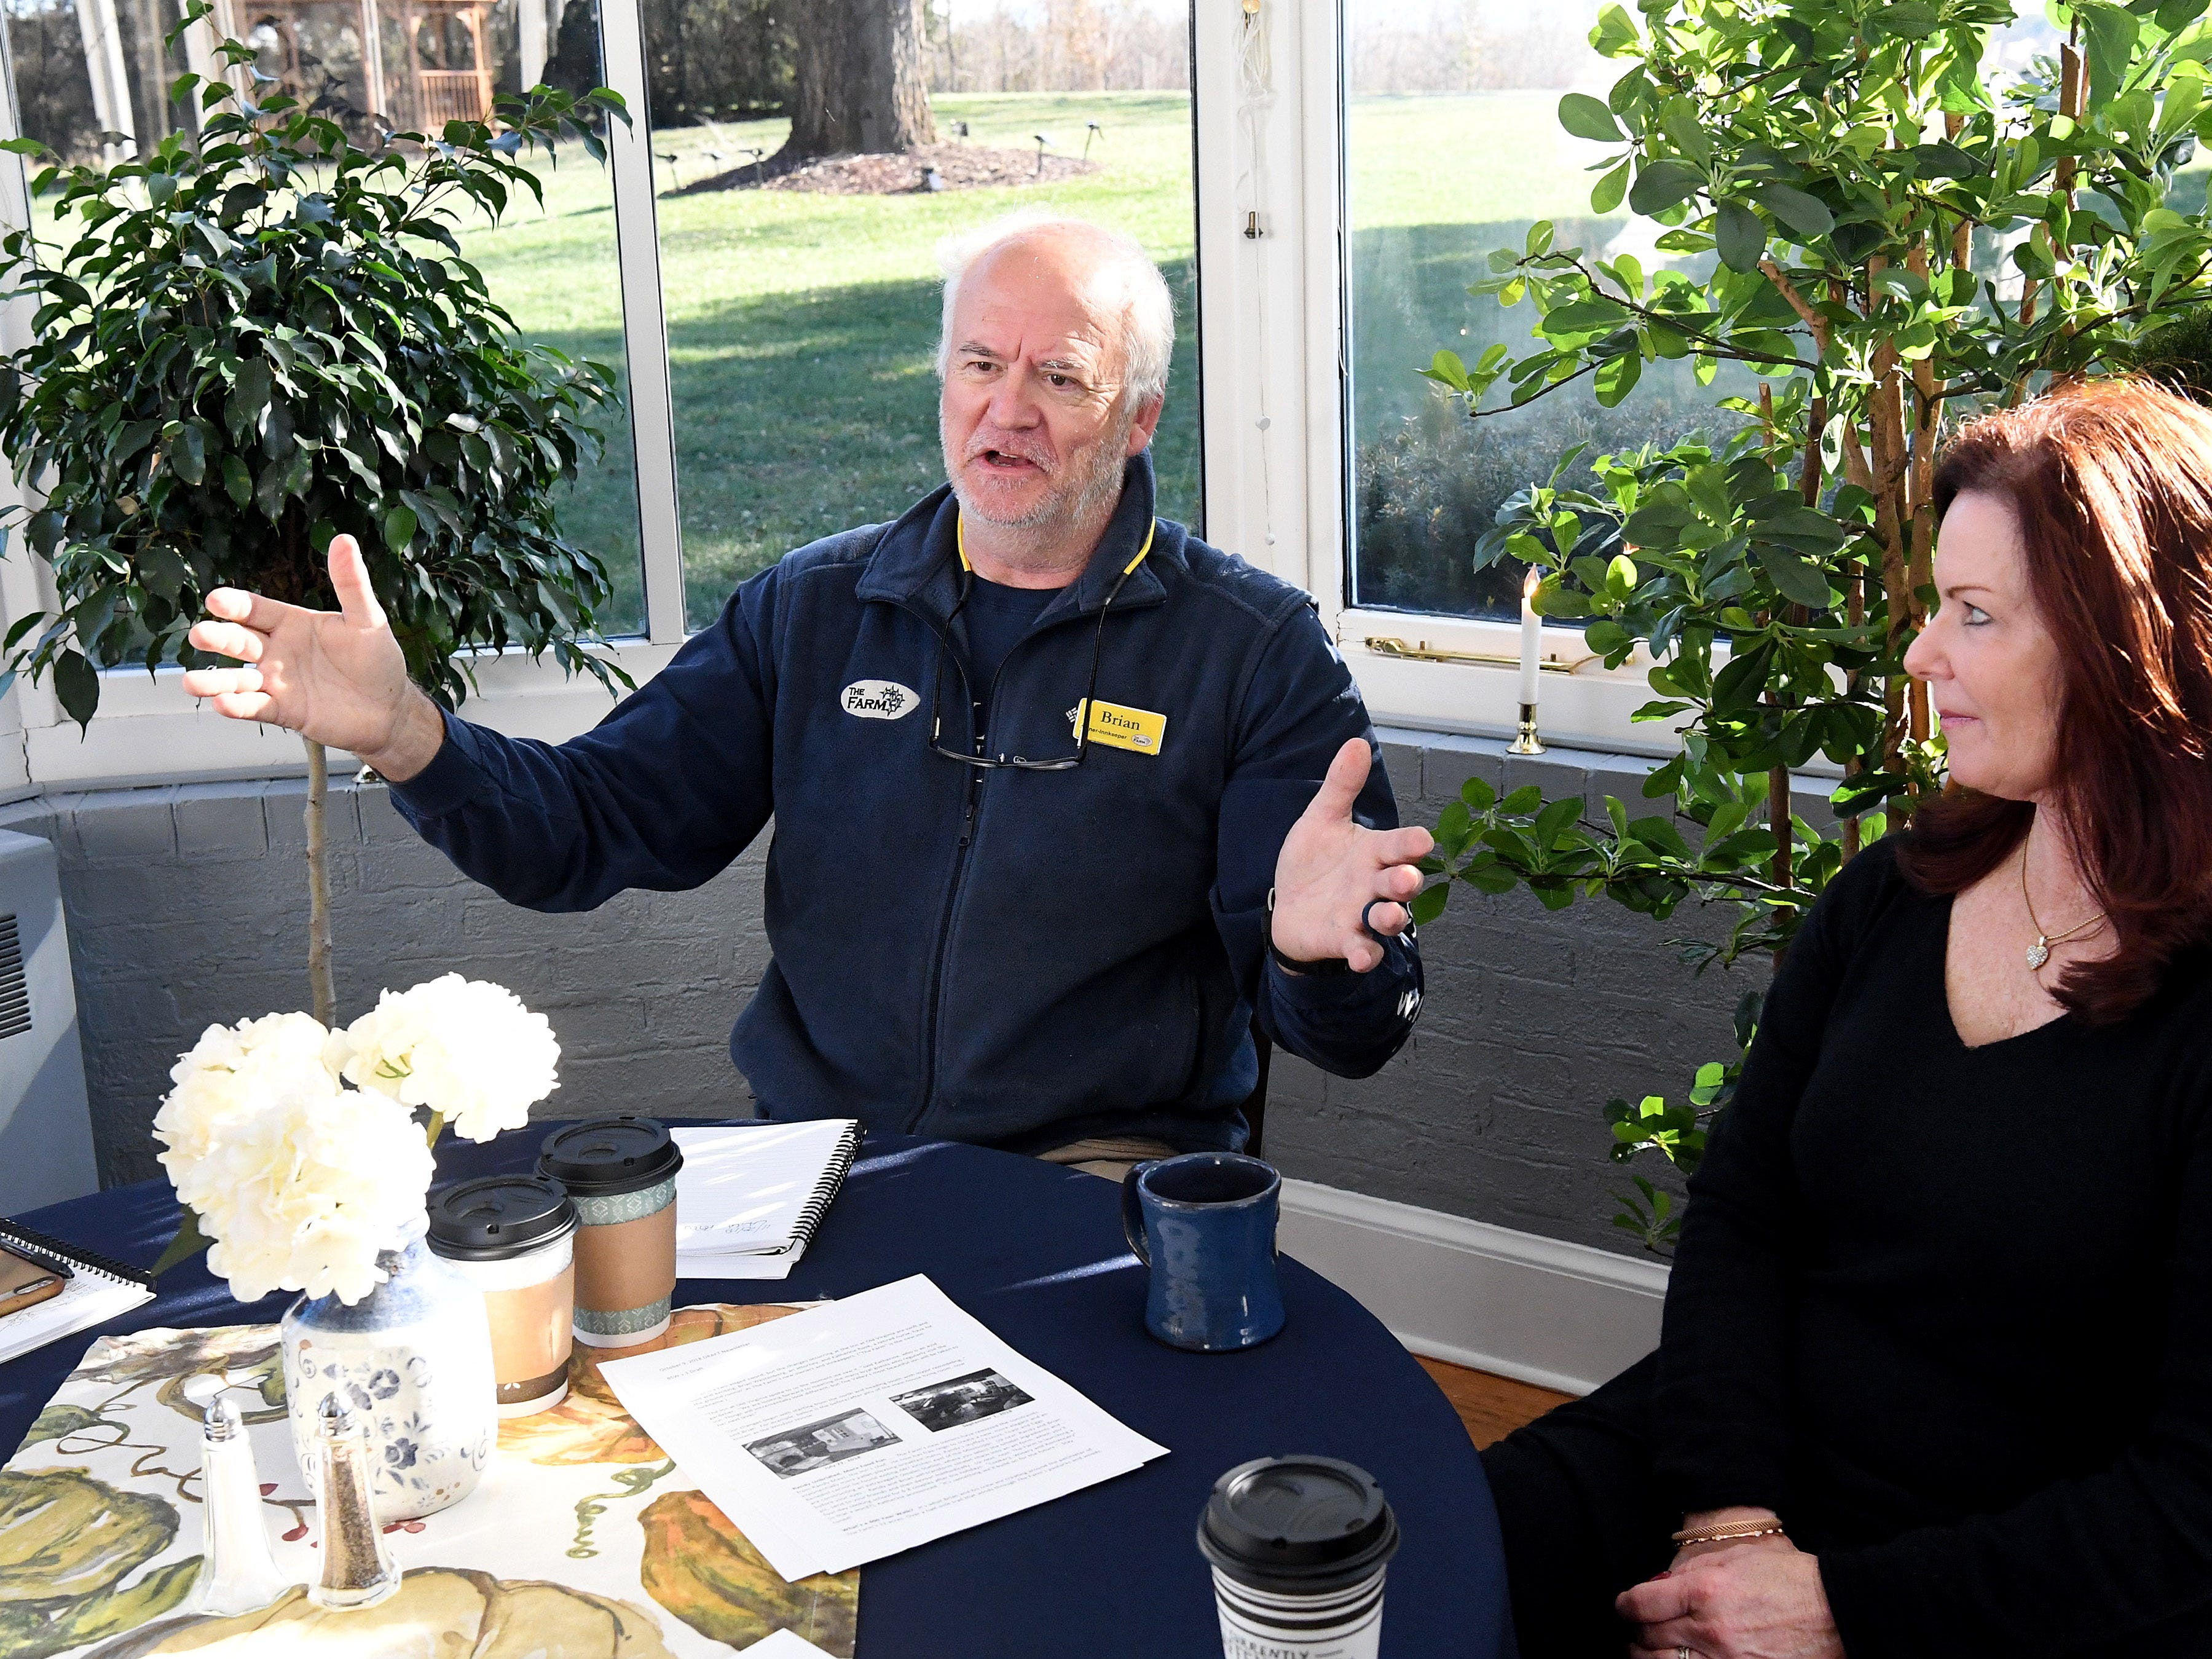 Co-owner and innkeeper Brian Westenberg talks about property for the inn, sitting next to co-owner and fellow innkeeper Katherine Rook, during an interview at the Inn at WestShire Farms in Staunton on Wednesday, Nov. 28, 2018.